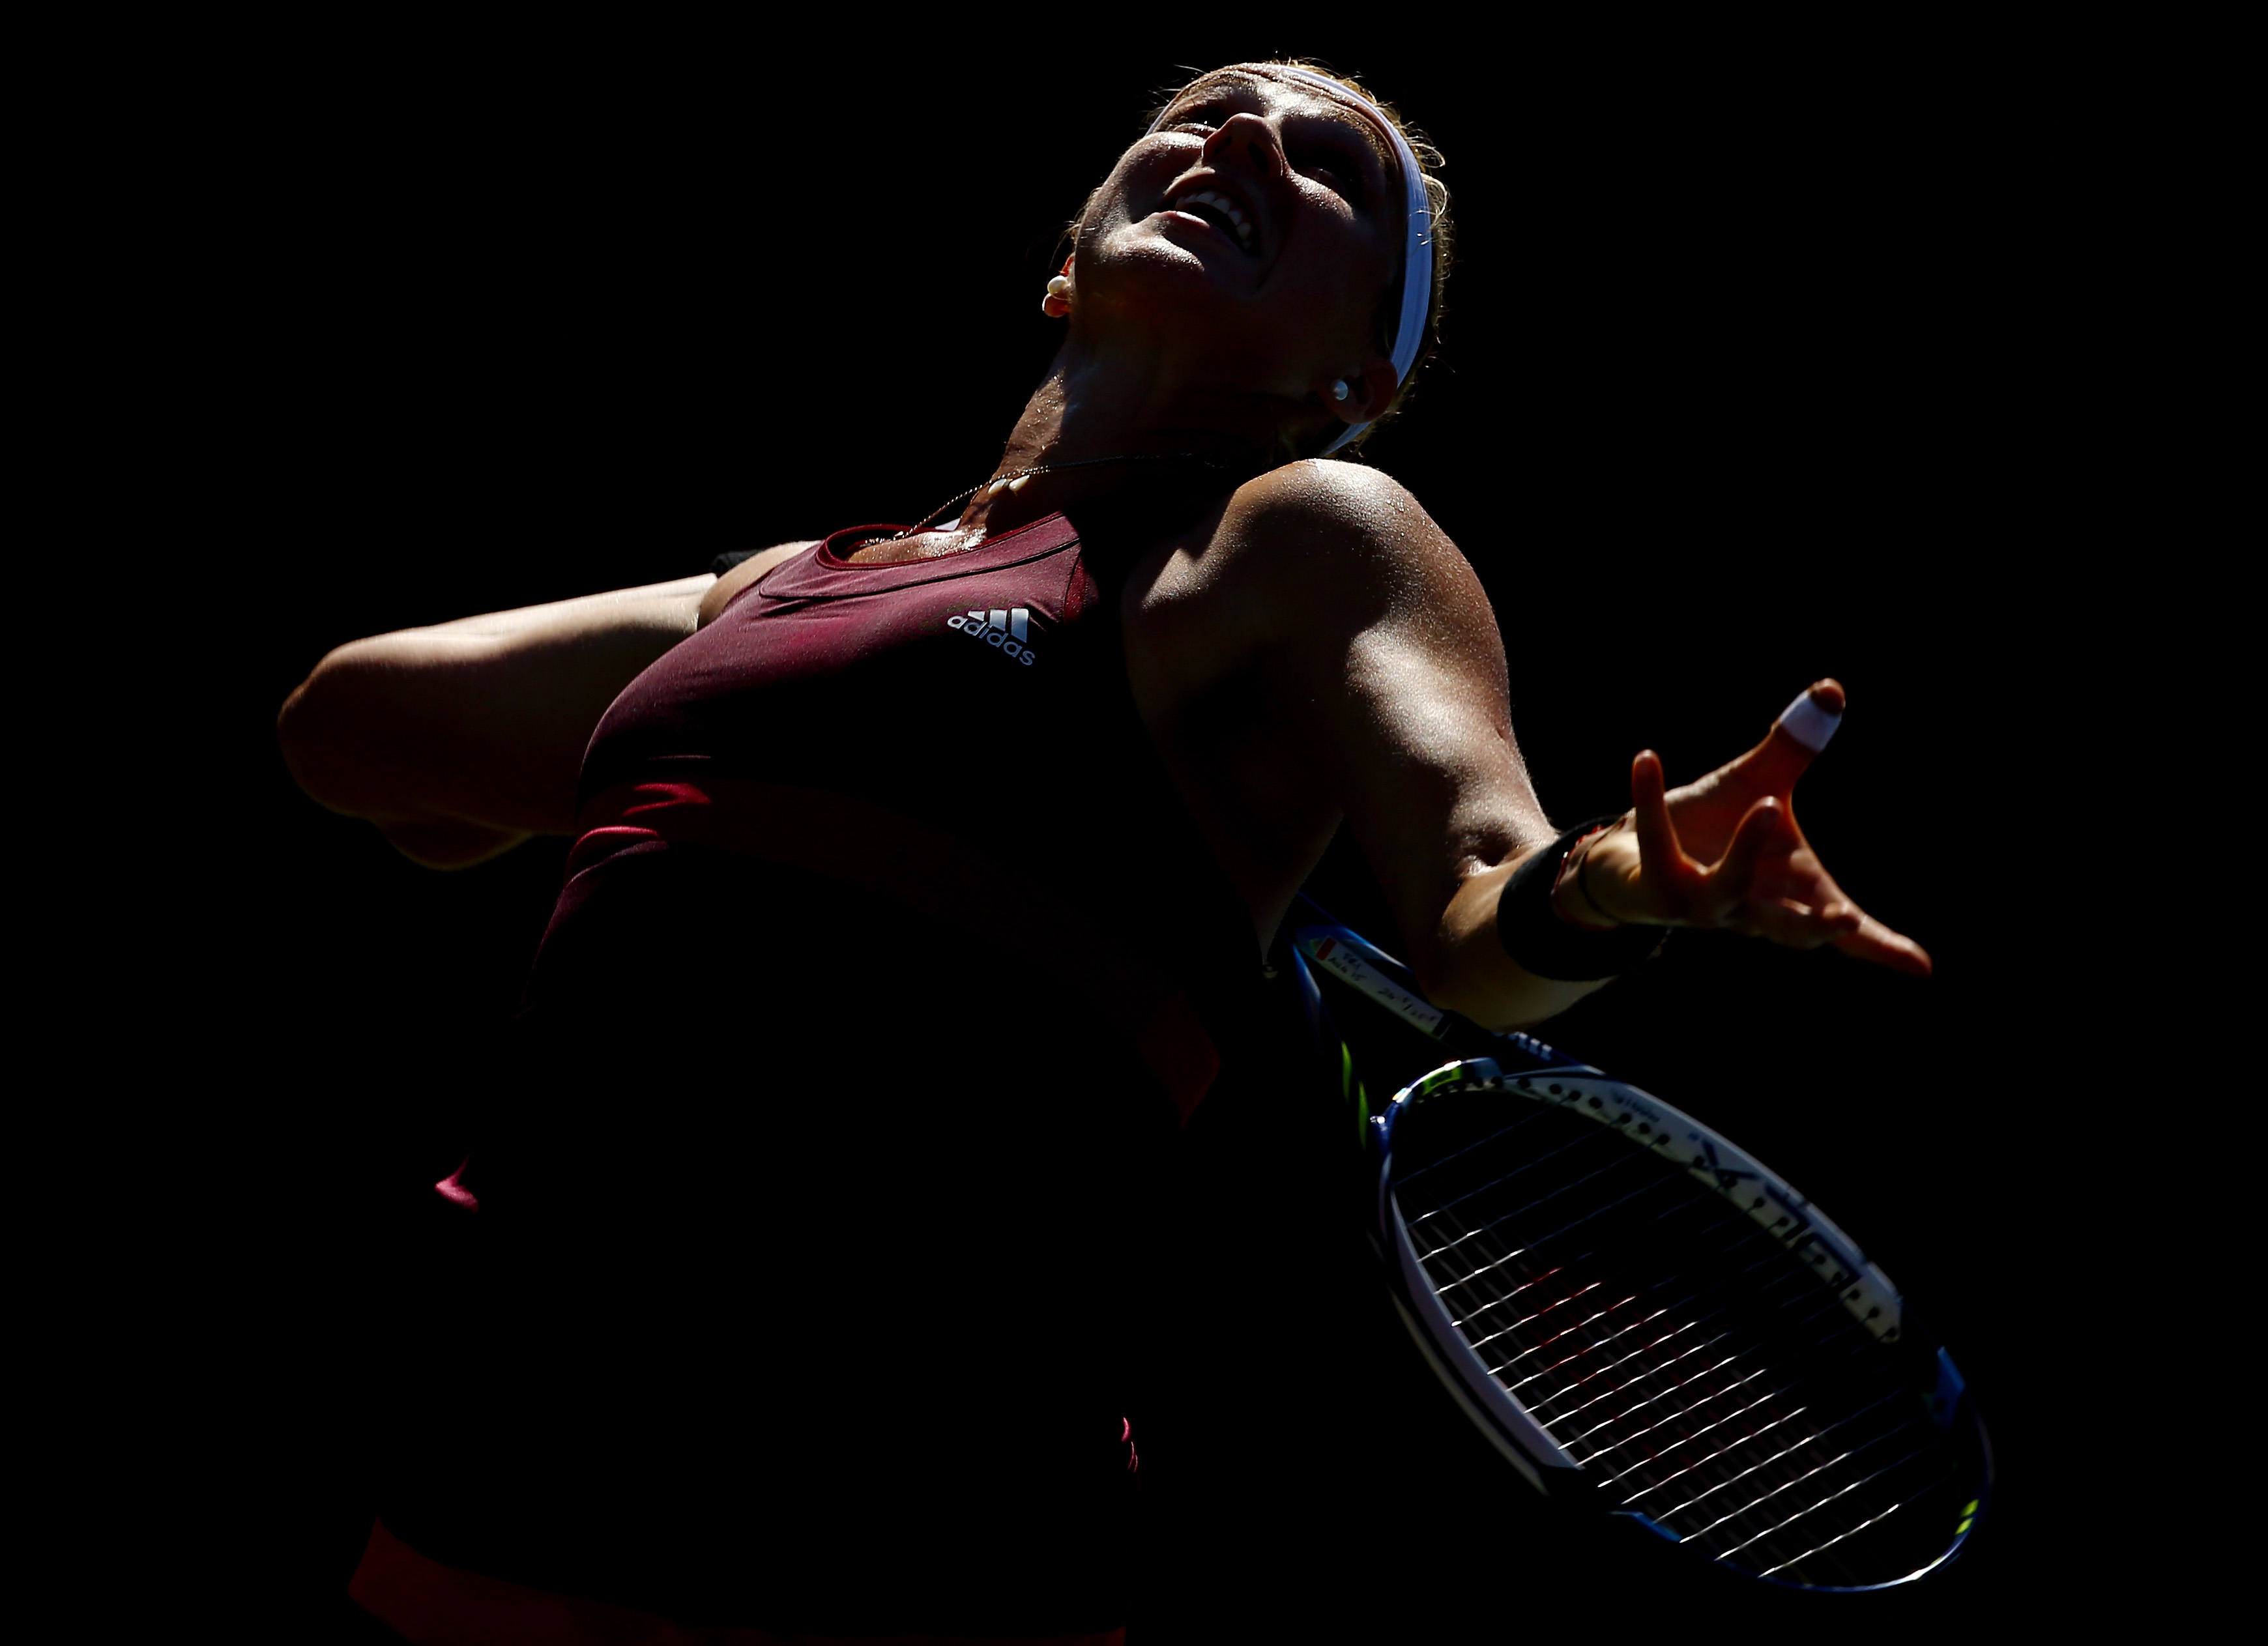 <b>Anastasia Pavlyuchenkova</b> first made headlines in 2006, when she defeated Caroline Wozniacki at the junior championships of the Australian Open. Since then, she's reached the quarterfinals at the 2011 Australian Open, defeated third-ranked Vera Zvonareva at Roland Garros and amassed nearly $2 million in prize money.